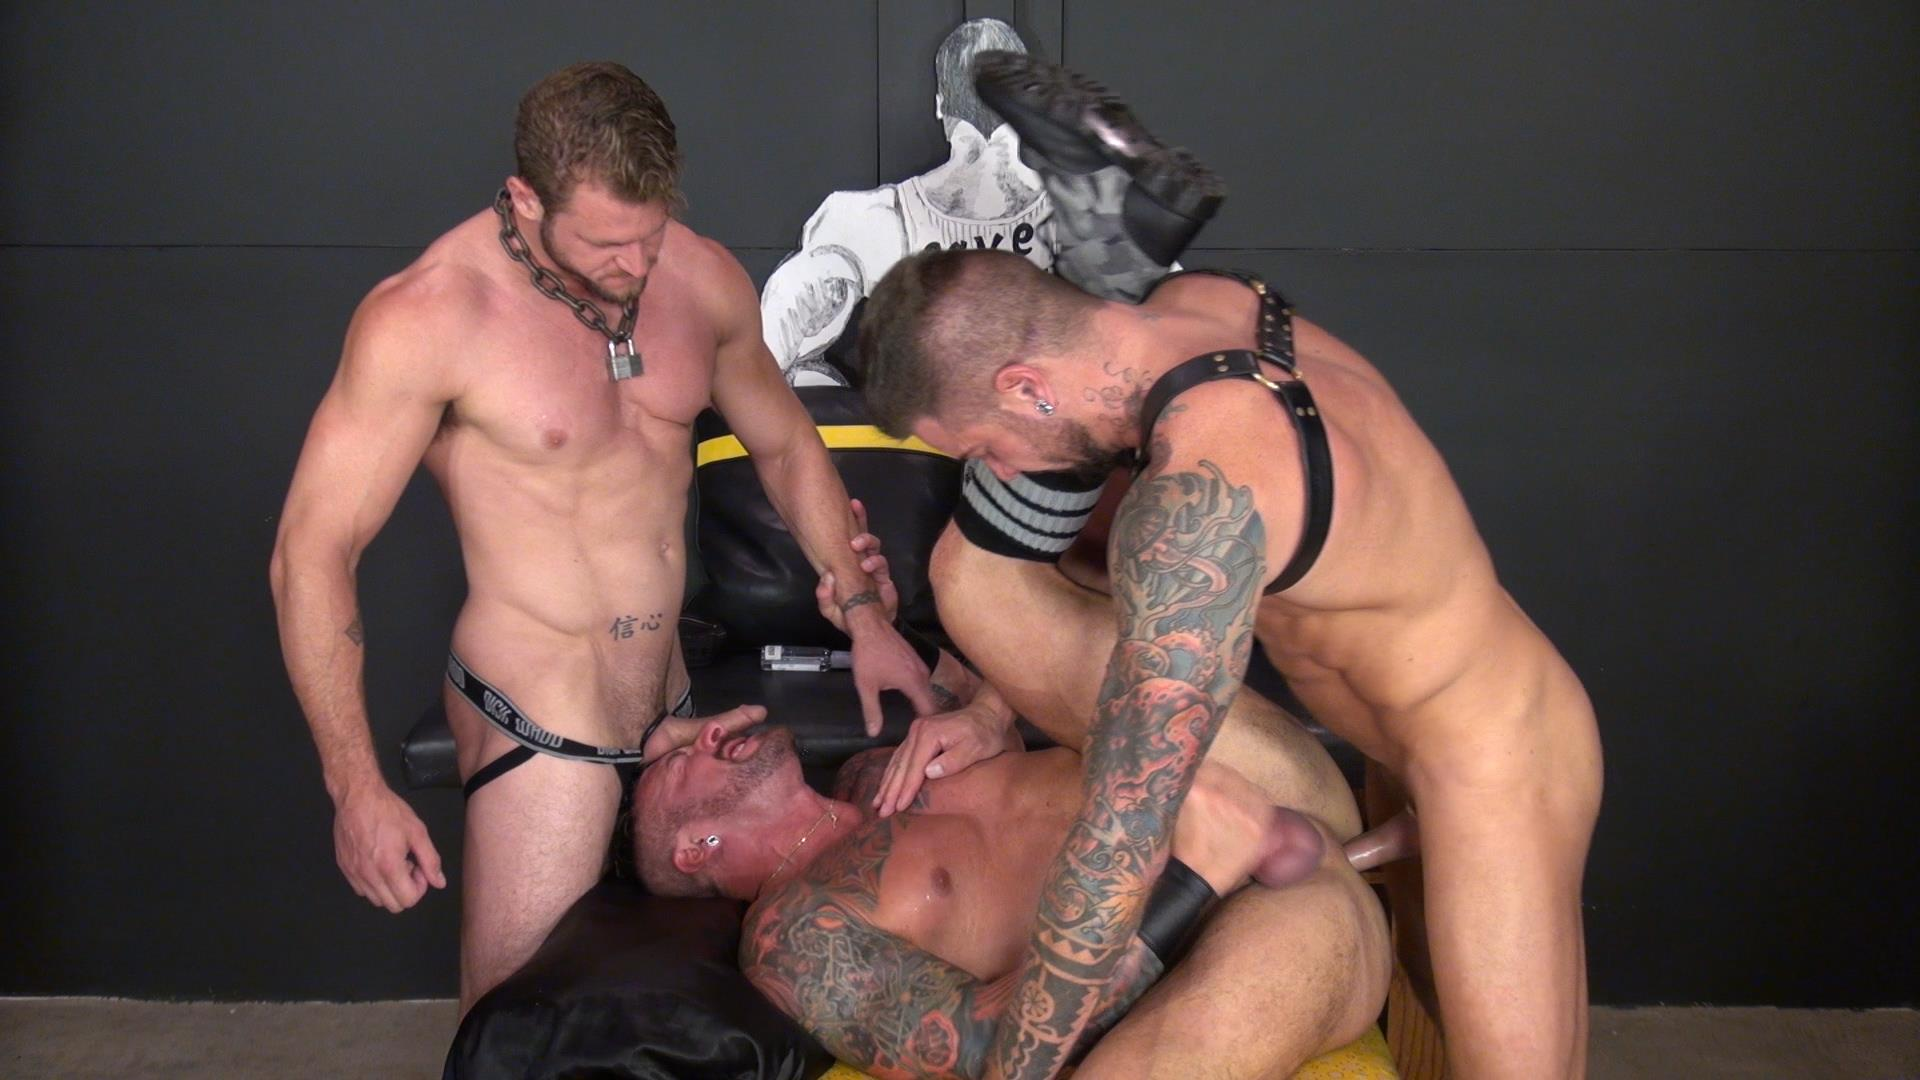 Raw-and-Rough-Boy-Fillmore-Dolf-Dietrich-Damon-Andros-Hugh-Hunter-Ace-Era-Free-Gay-Porn-07 Bareback Fuck And Piss Party At An Underground Sex Club